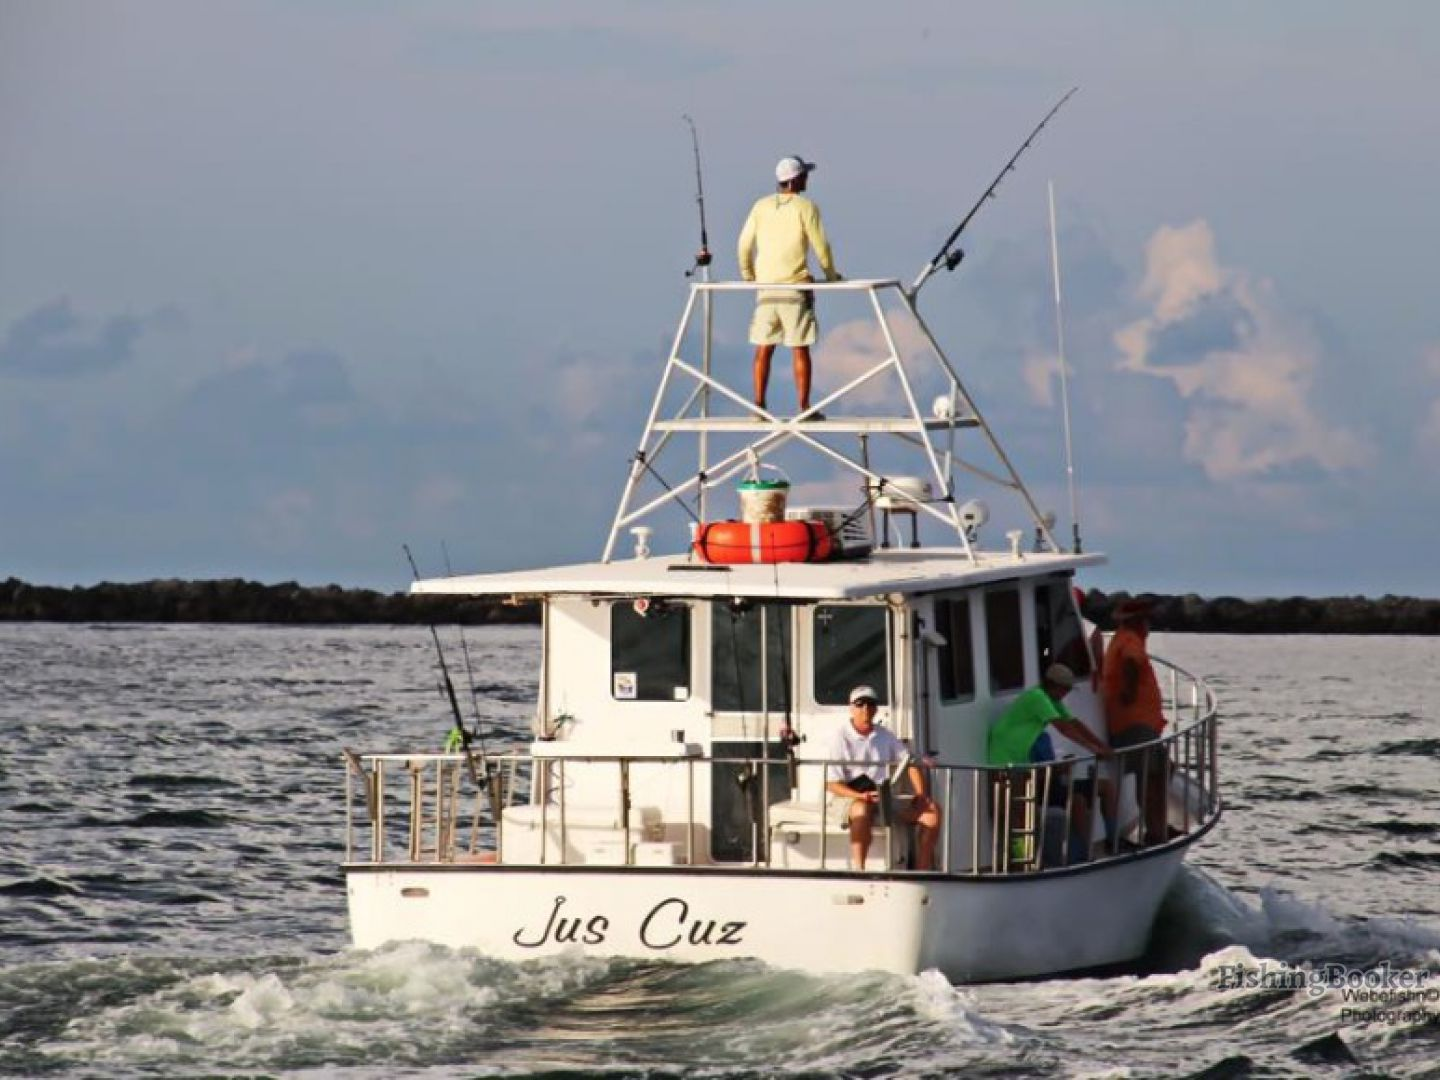 Jus cuz fishing charters orange beach alabama for Fishing orange beach al